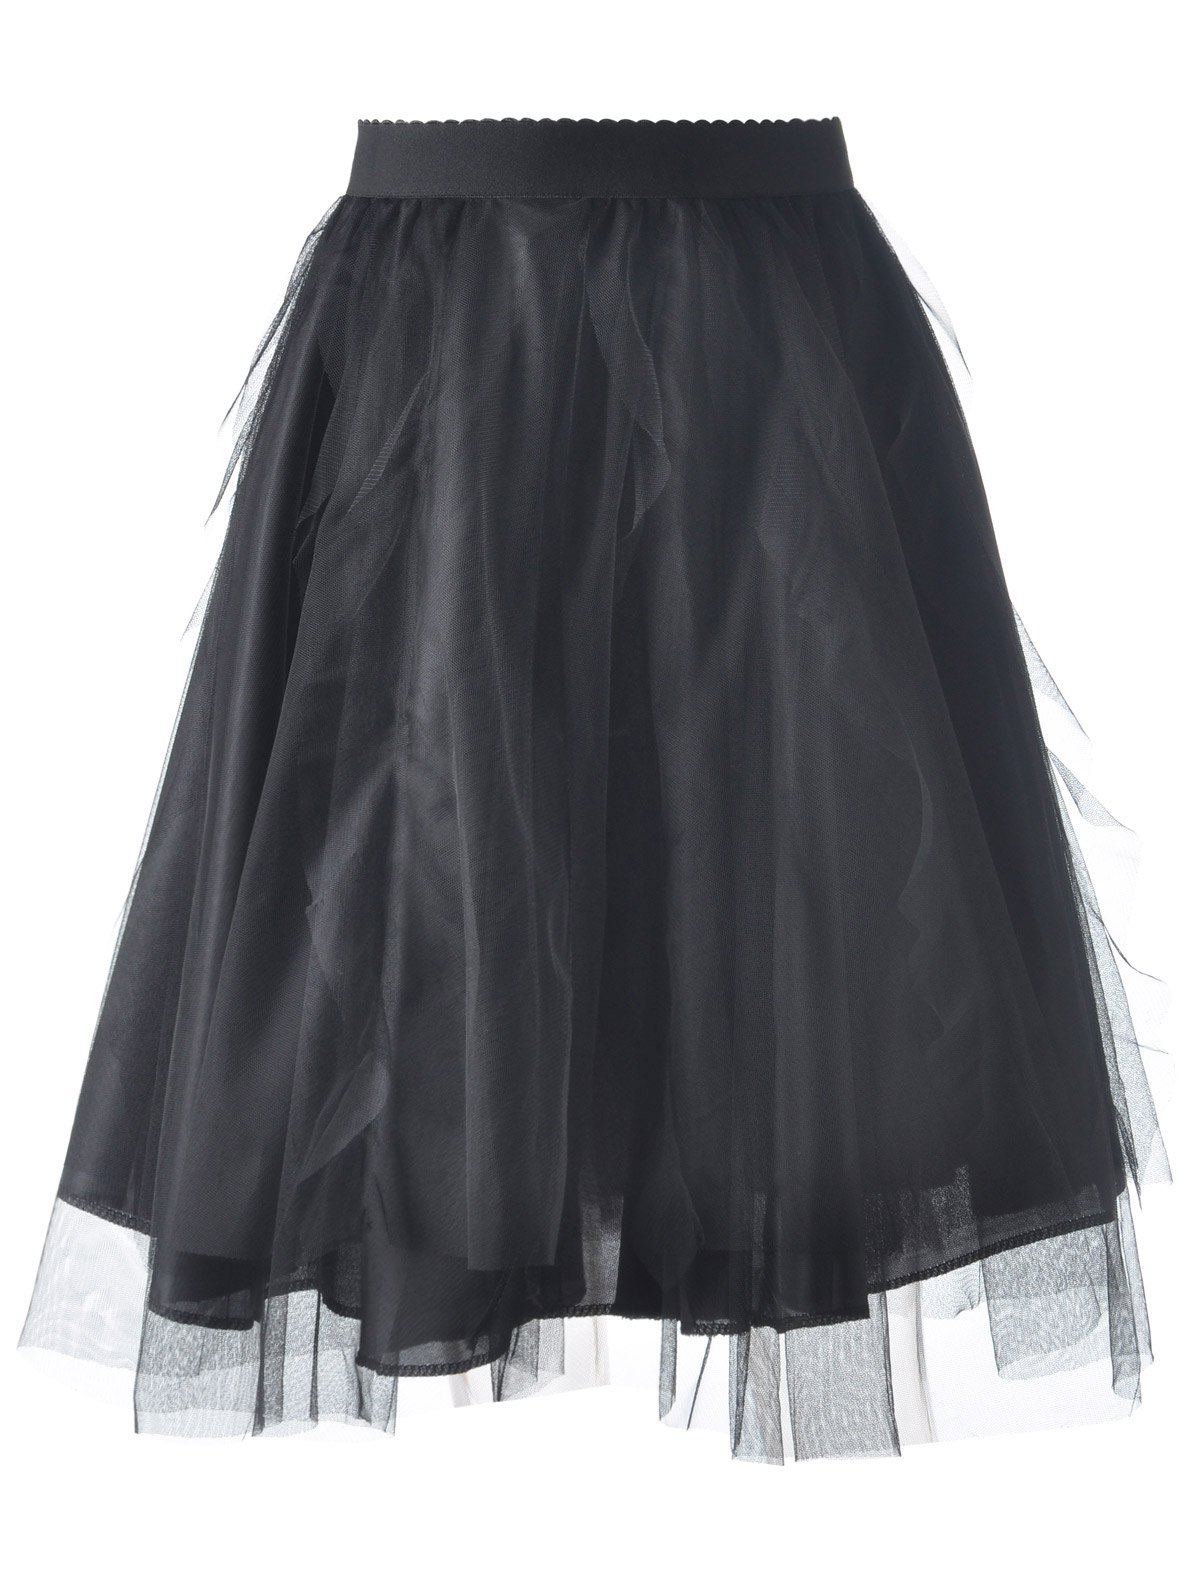 Stylish Women's Voile Solid Color Simple Bud Skirt - BLACK ONE SIZE(FIT SIZE XS TO M)